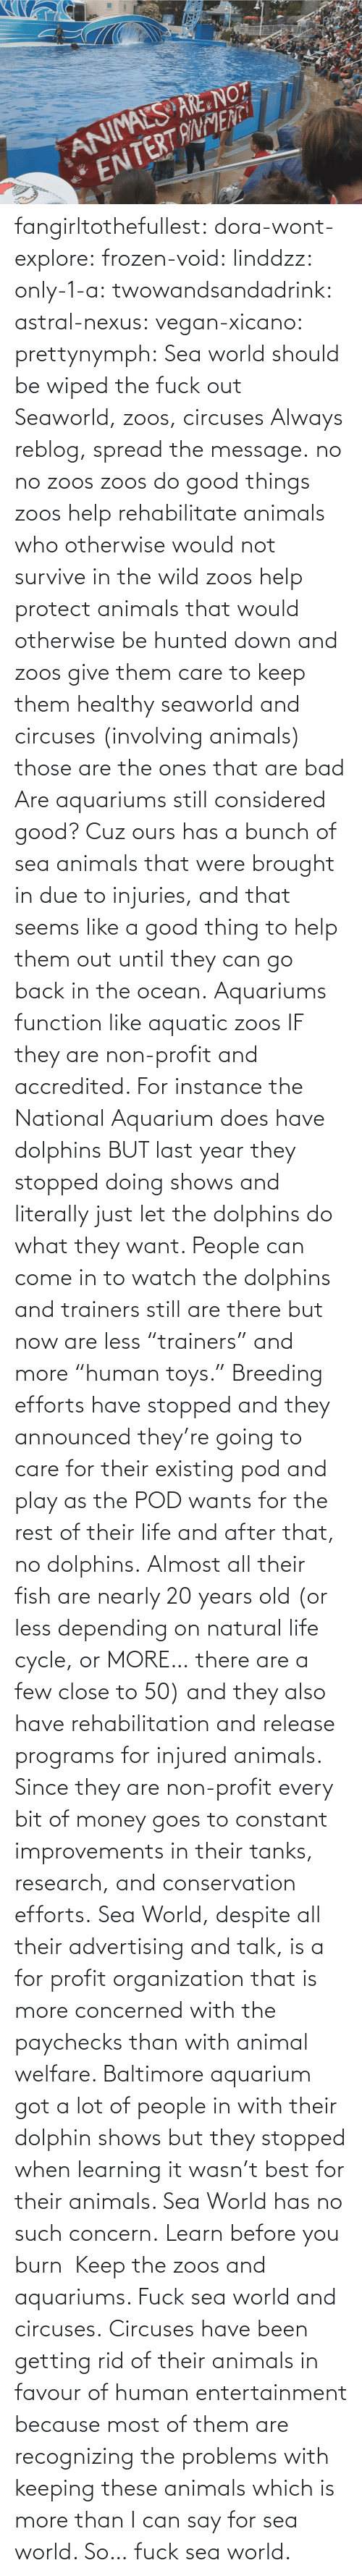 "Hunted: fangirltothefullest:  dora-wont-explore:  frozen-void:  linddzz:  only-1-a:  twowandsandadrink:  astral-nexus:  vegan-xicano:  prettynymph:  Sea world should be wiped the fuck out  Seaworld, zoos, circuses  Always reblog, spread the message.  no no zoos zoos do good things zoos help rehabilitate animals who otherwise would not survive in the wild zoos help protect animals that would otherwise be hunted down and zoos give them care to keep them healthy seaworld and circuses (involving animals) those are the ones that are bad  Are aquariums still considered good? Cuz ours has a bunch of sea animals that were brought in due to injuries, and that seems like a good thing to help them out until they can go back in the ocean.  Aquariums function like aquatic zoos IF they are non-profit and accredited. For instance the National Aquarium does have dolphins BUT last year they stopped doing shows and literally just let the dolphins do what they want. People can come in to watch the dolphins and trainers still are there but now are less ""trainers"" and more ""human toys."" Breeding efforts have stopped and they announced they're going to care for their existing pod and play as the POD wants for the rest of their life and after that, no dolphins. Almost all their fish are nearly 20 years old (or less depending on natural life cycle, or MORE… there are a few close to 50) and they also have rehabilitation and release programs for injured animals. Since they are non-profit every bit of money goes to constant improvements in their tanks, research, and conservation efforts. Sea World, despite all their advertising and talk, is a for profit organization that is more concerned with the paychecks than with animal welfare. Baltimore aquarium got a lot of people in with their dolphin shows but they stopped when learning it wasn't best for their animals. Sea World has no such concern.  Learn before you burn   Keep the zoos and aquariums. Fuck sea world and circuses.  Circuses have been getting rid of  their animals in favour of human entertainment because most of them are recognizing the problems with keeping these animals which is more than I can say for sea world. So… fuck sea world."